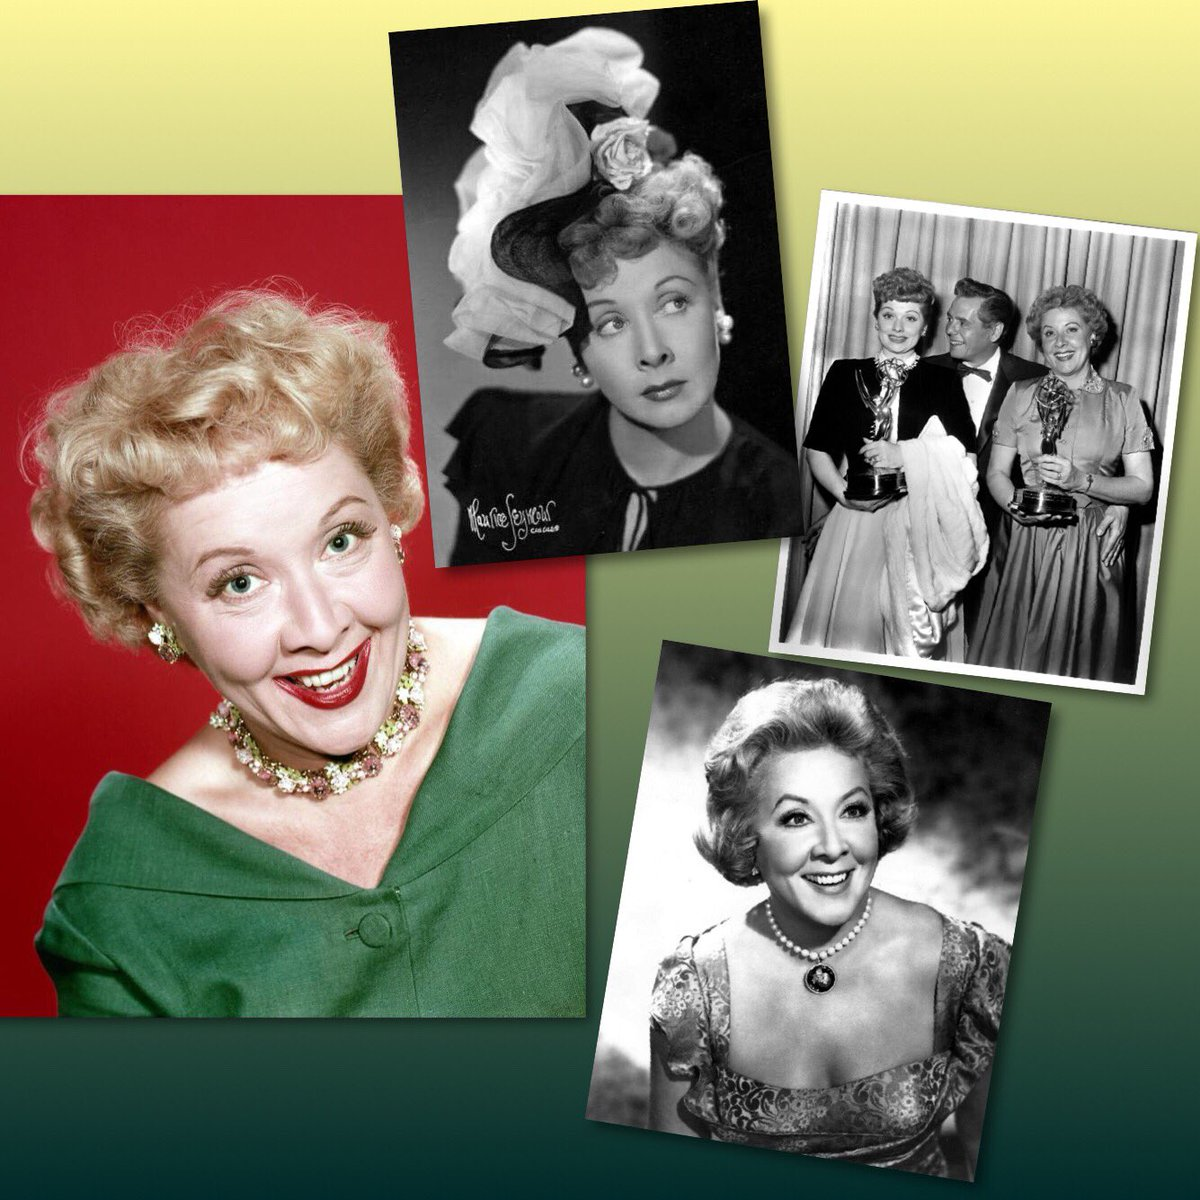 Communication on this topic: Li Jun Li, vivian-vance-born-july-26-1909/